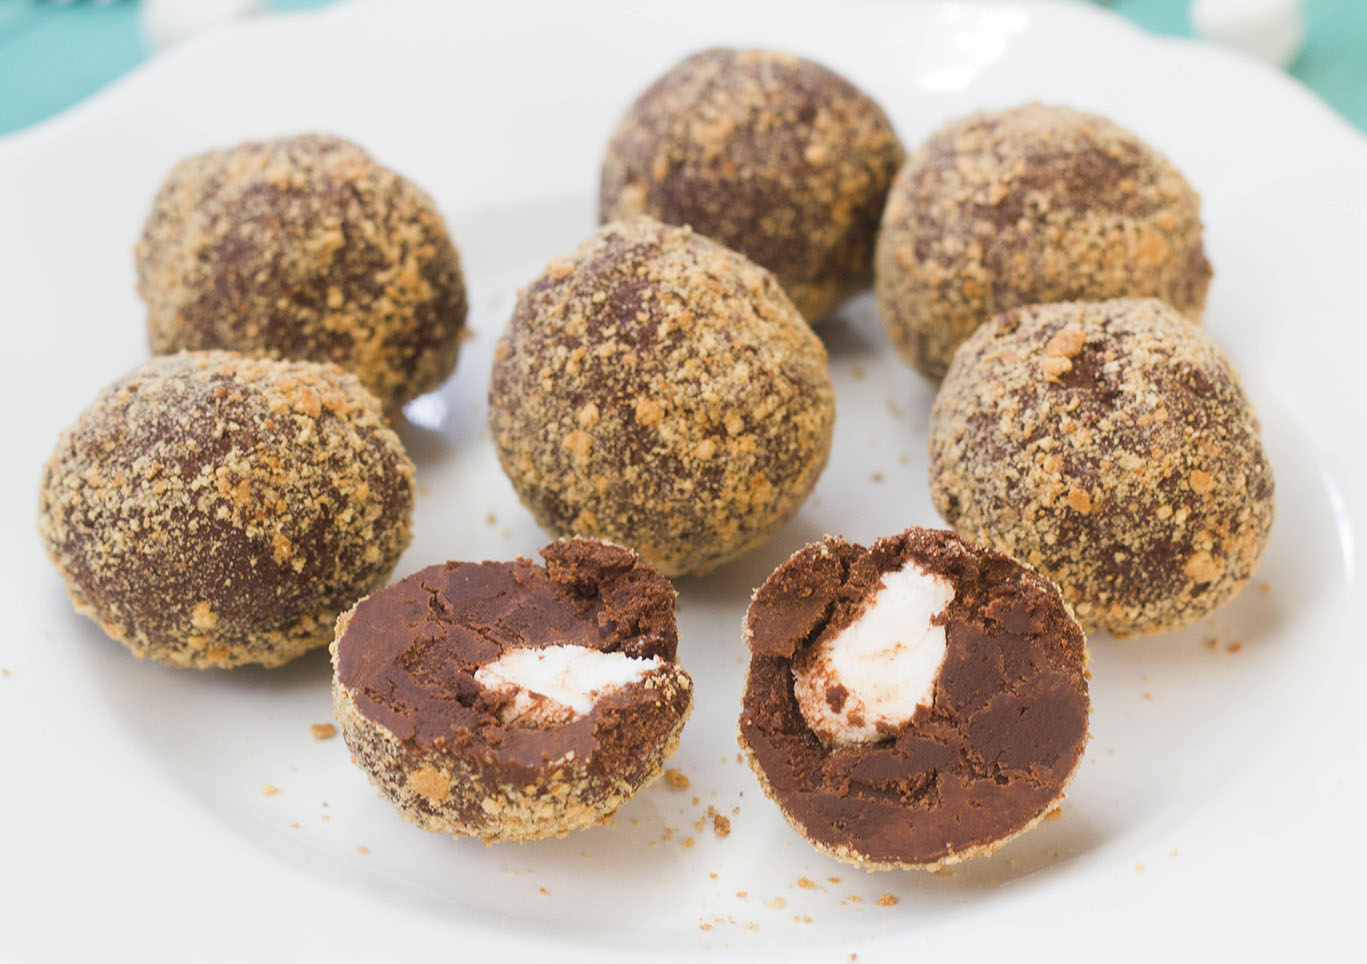 Indulge In These 8 Addictive Truffles That Are Easily DIY - Fullact ...